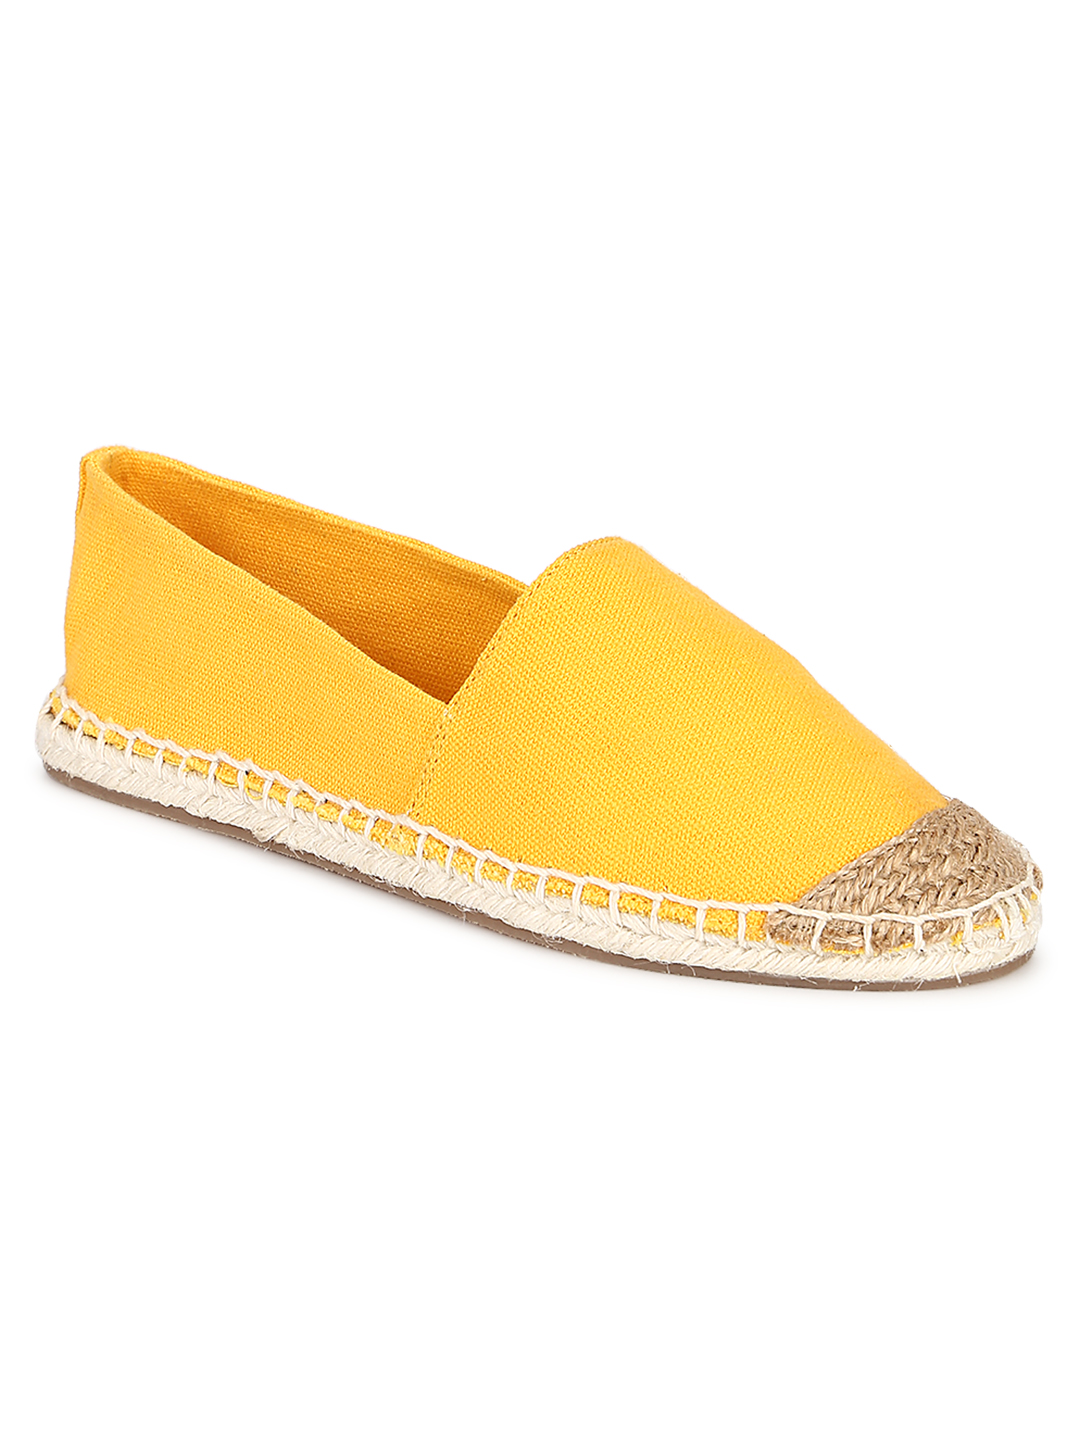 Truffle Collection | Truffle Collection Yellow Canvas Slip On Shoes